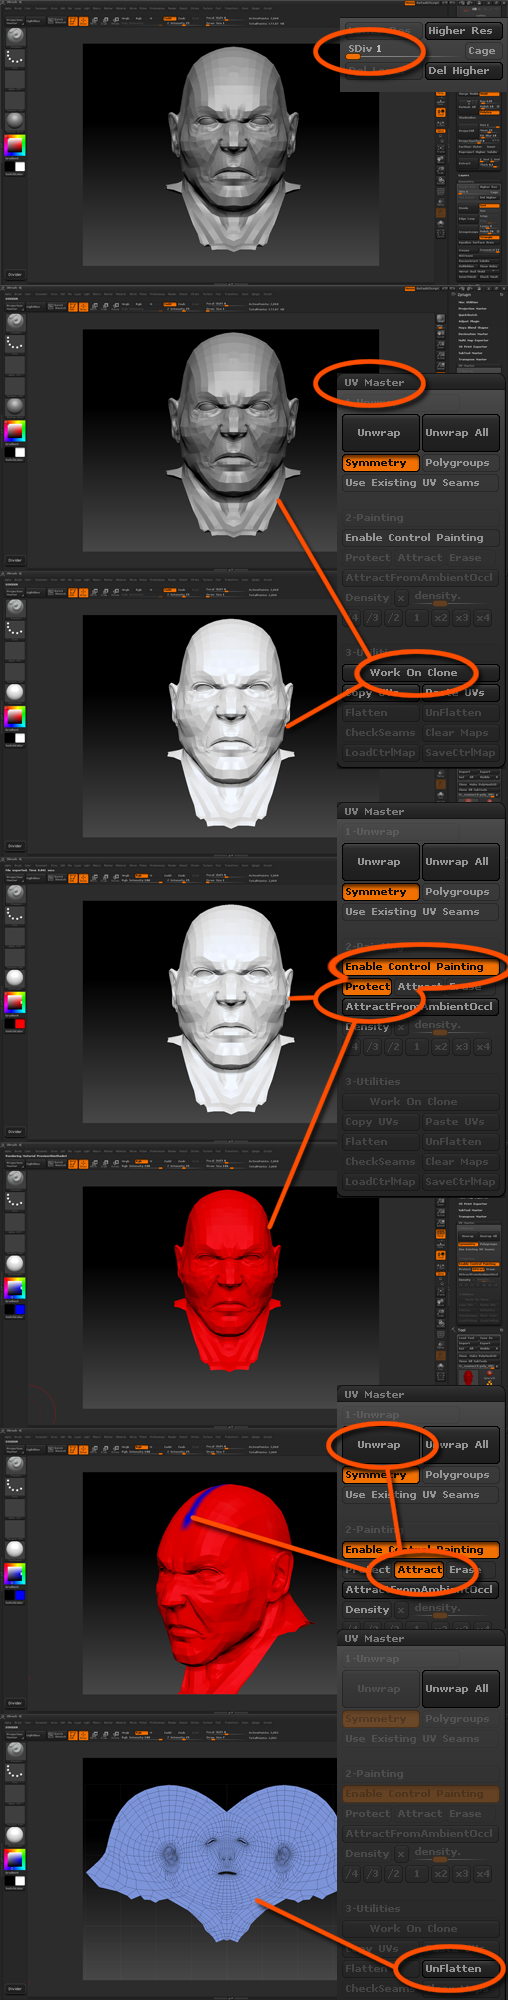 Texturing 3d-models with layers, sculpting, painting with color, specular, bump zbrush